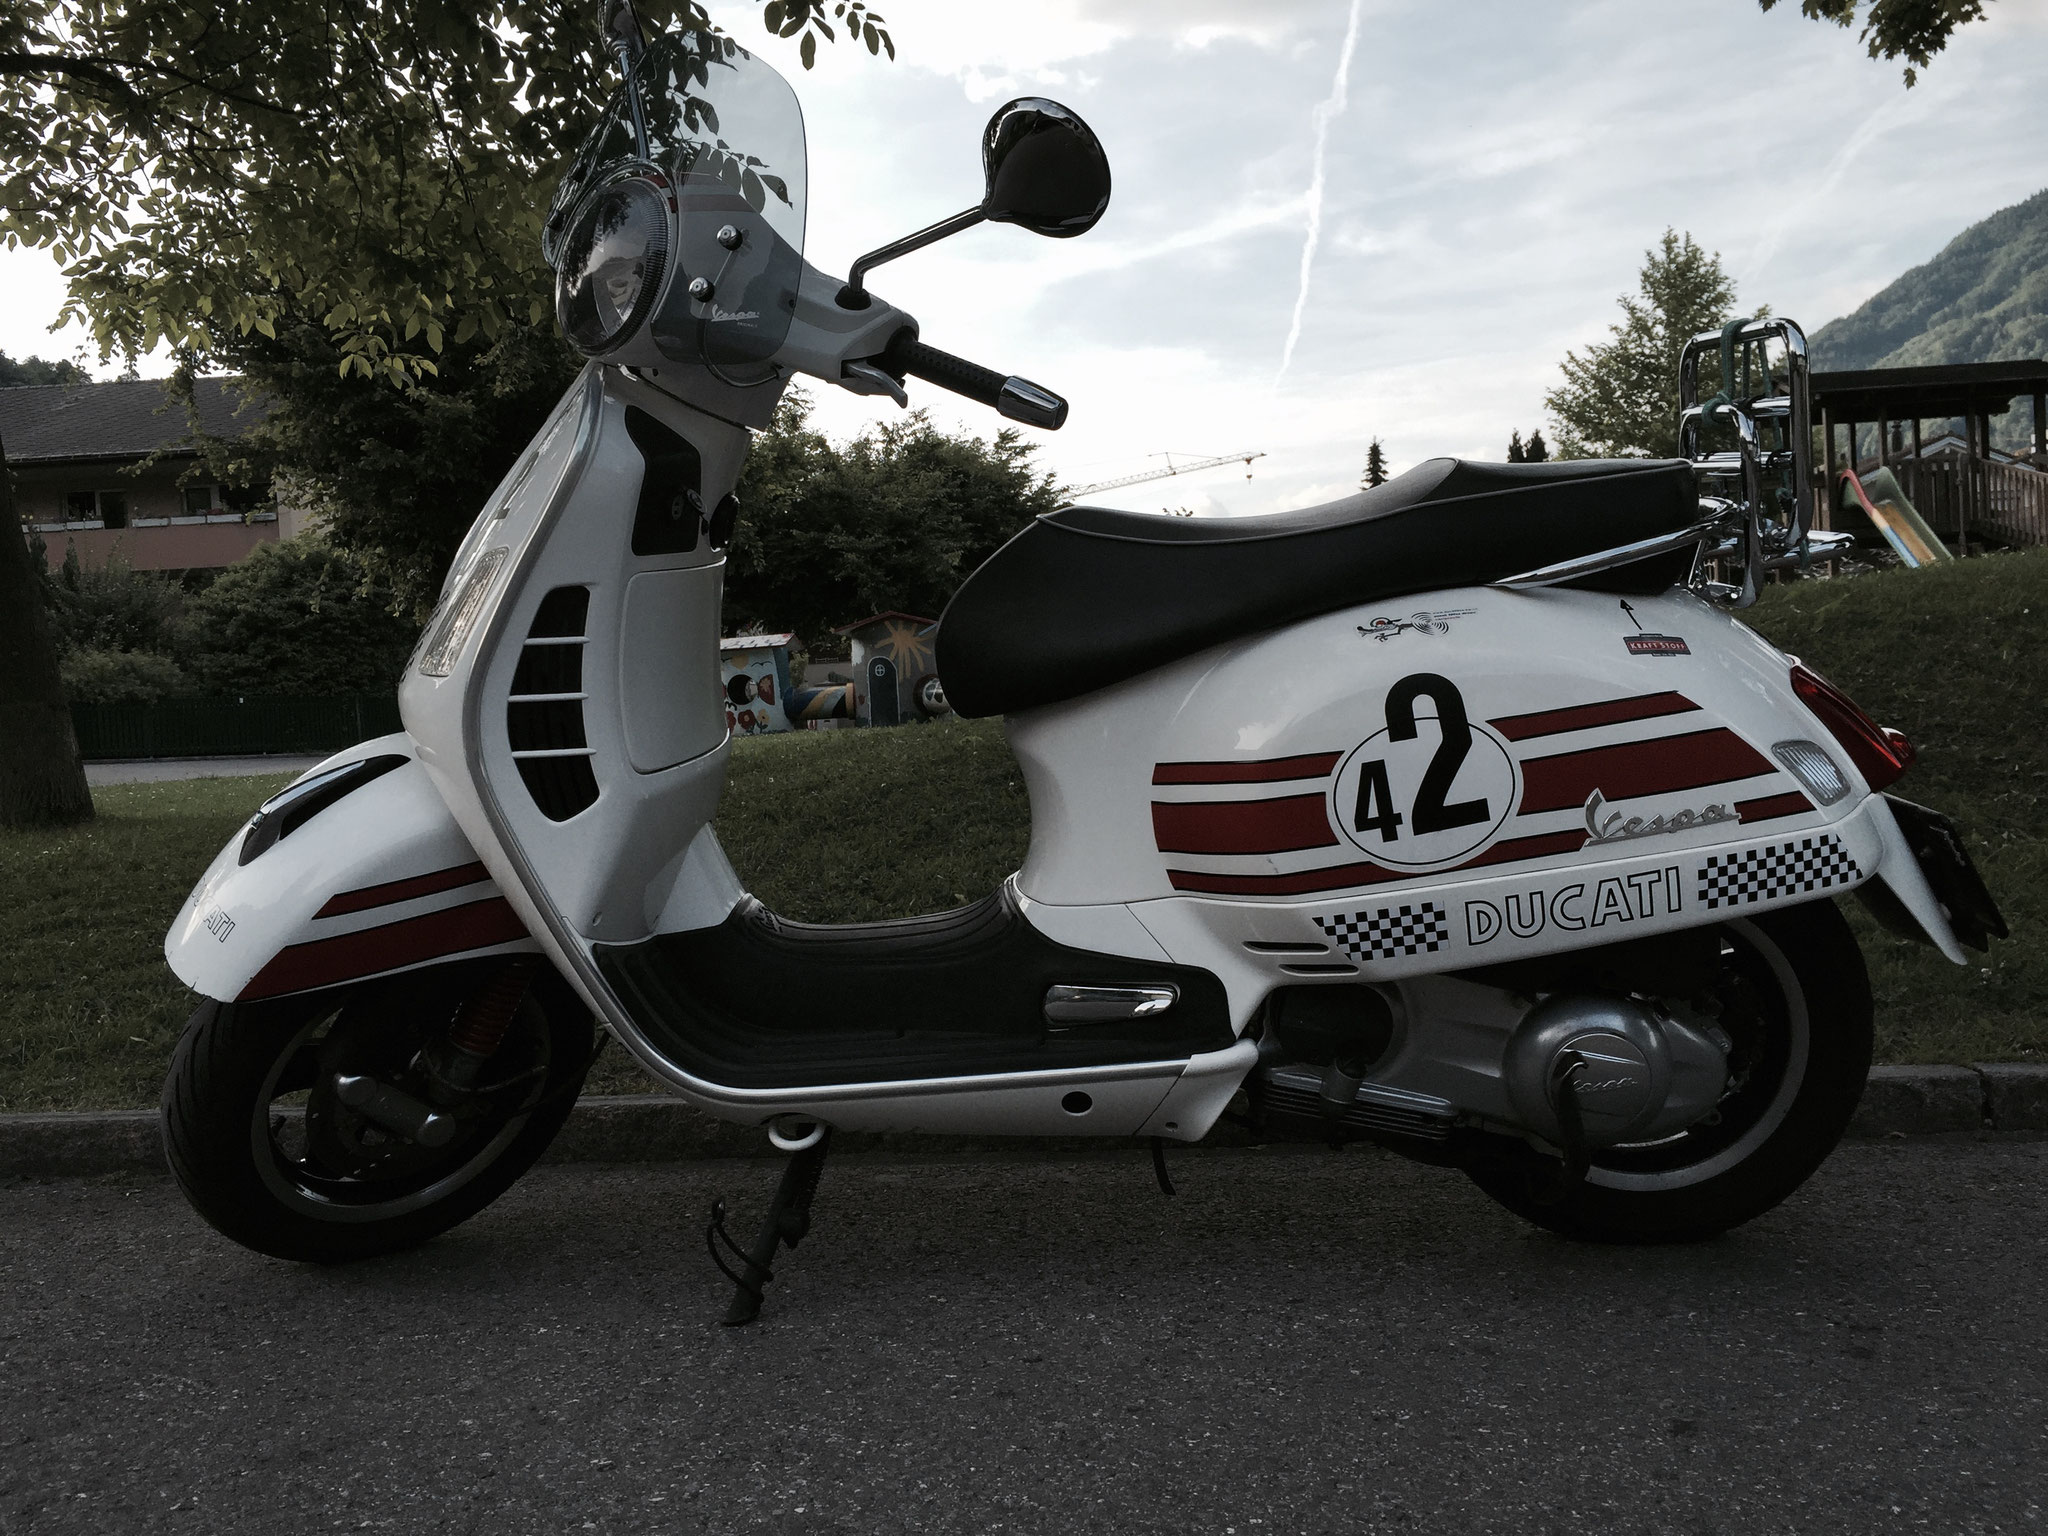 My Vespa GTS 300 in Ducati Design